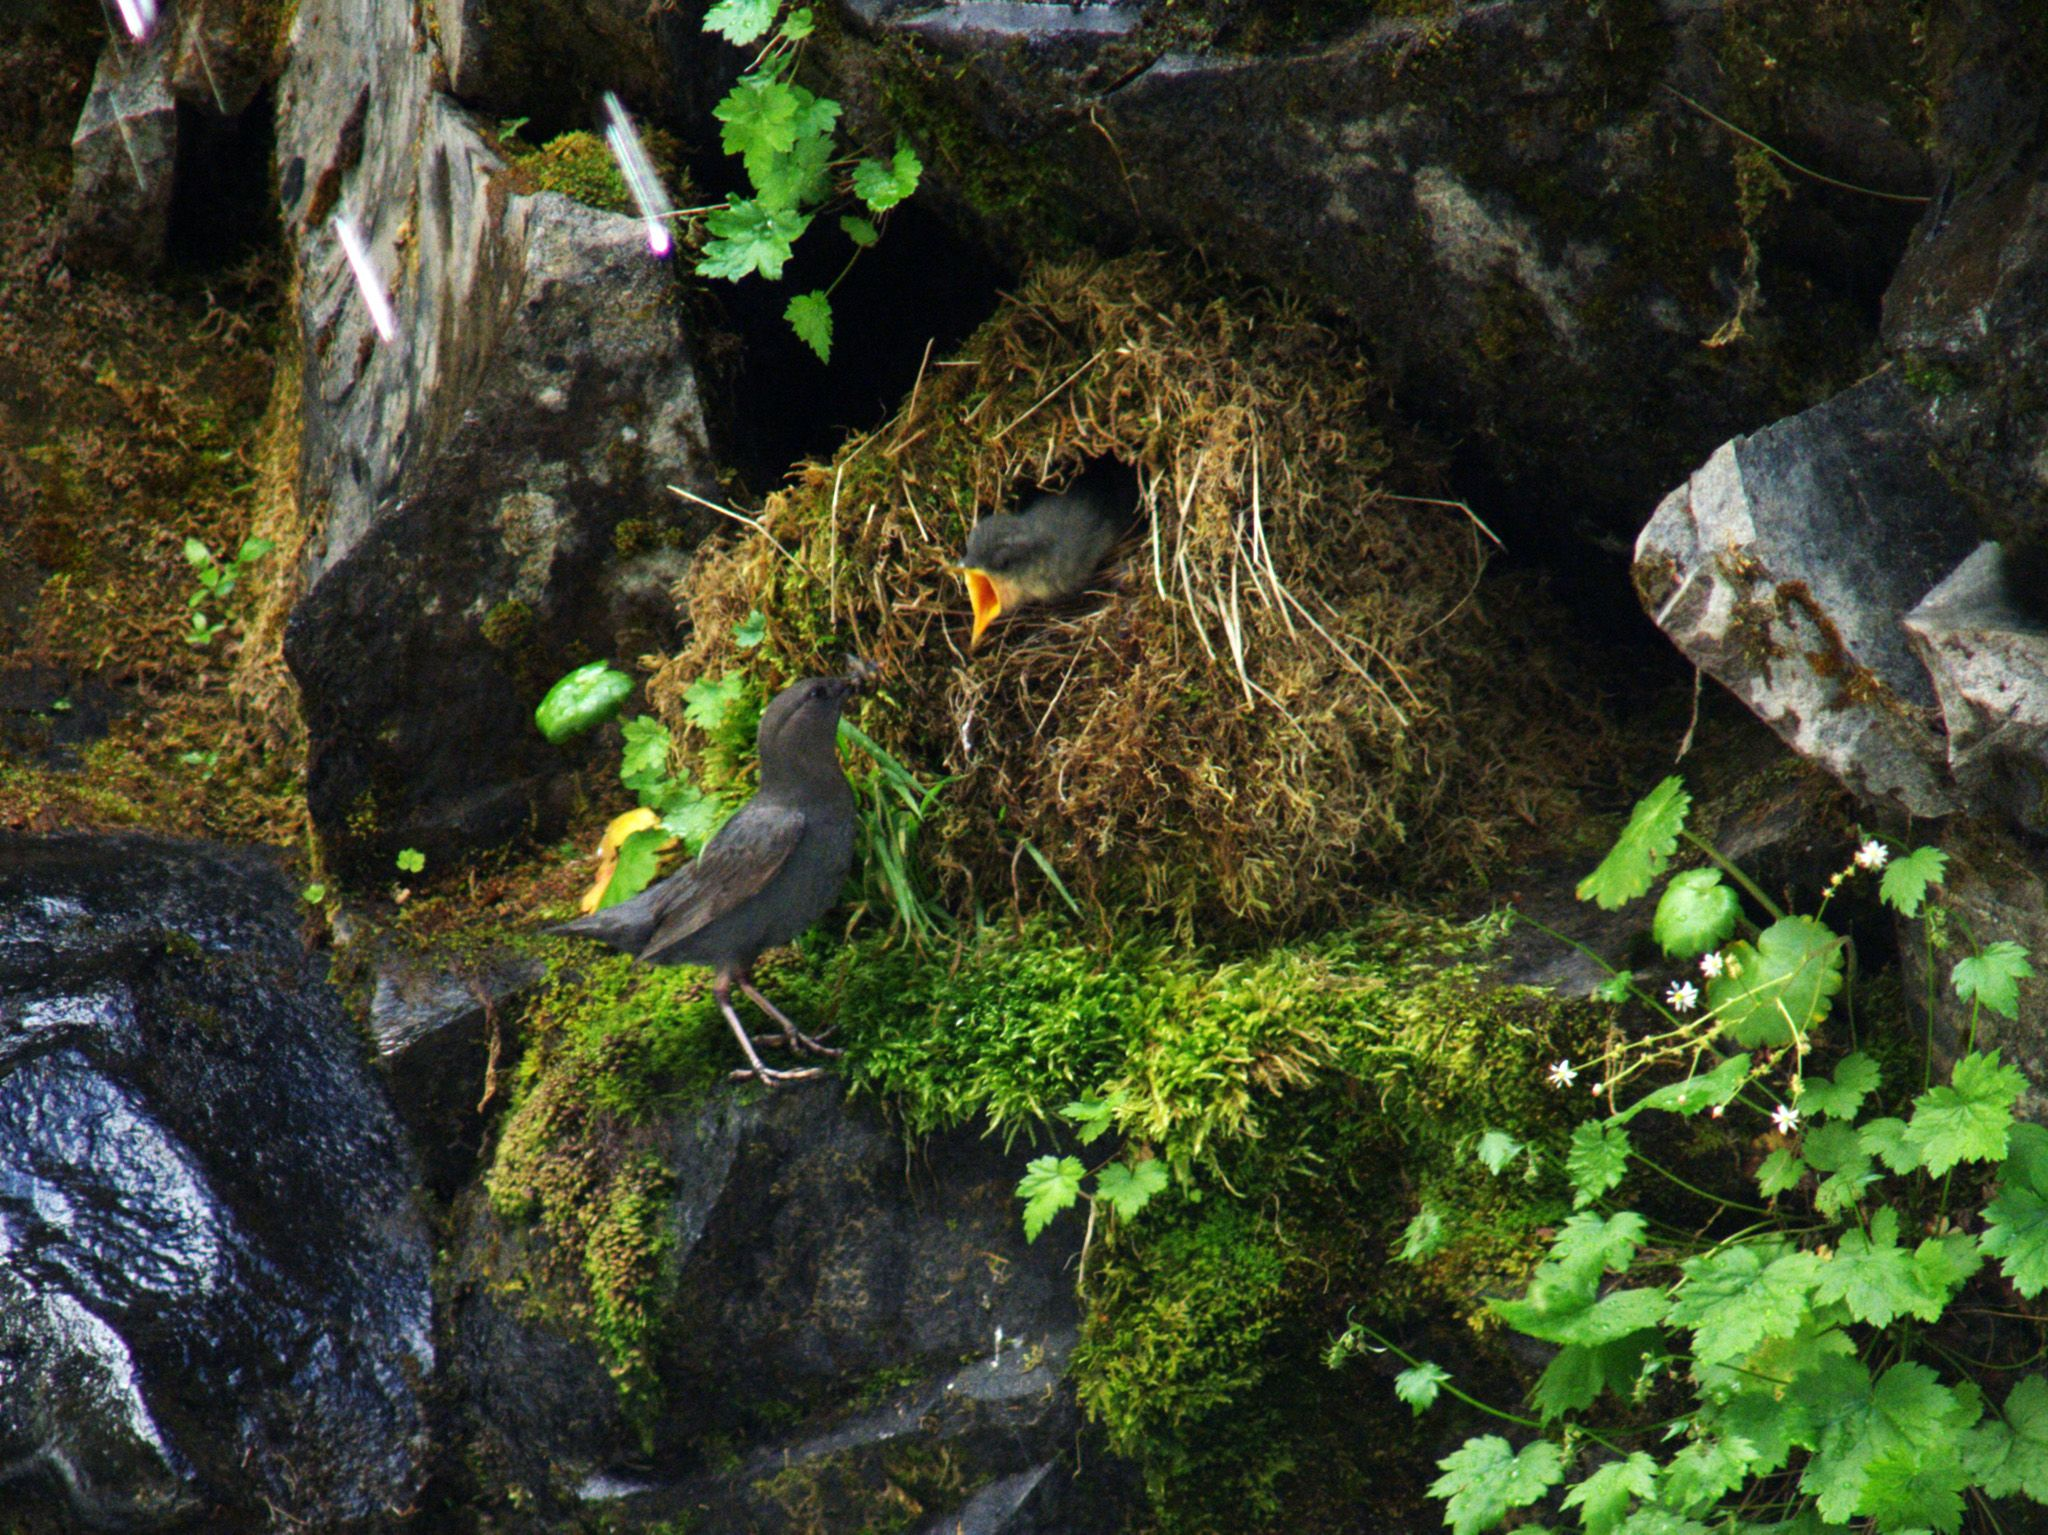 Mt Rainier National Park, WA:  An American Dipper in a nest.  This image is from America the... [Photo of the day - 六月 2018]